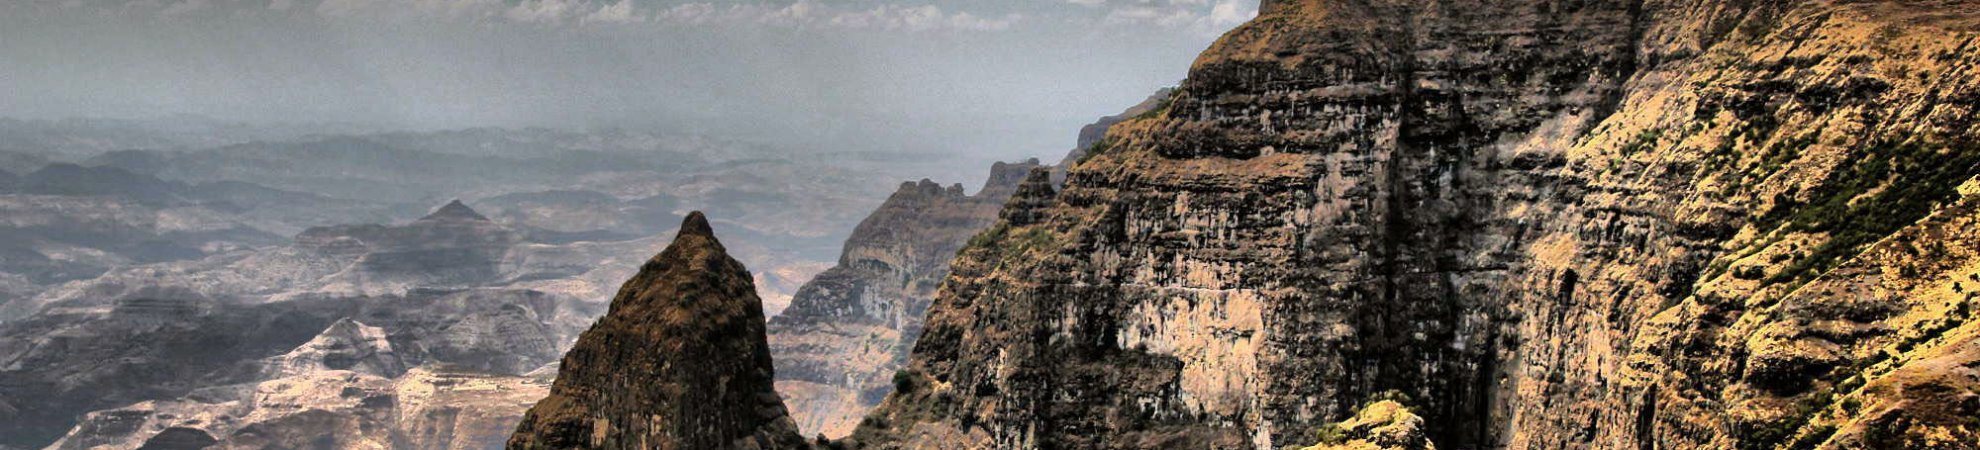 simien-mountains-national-park-ethiopia